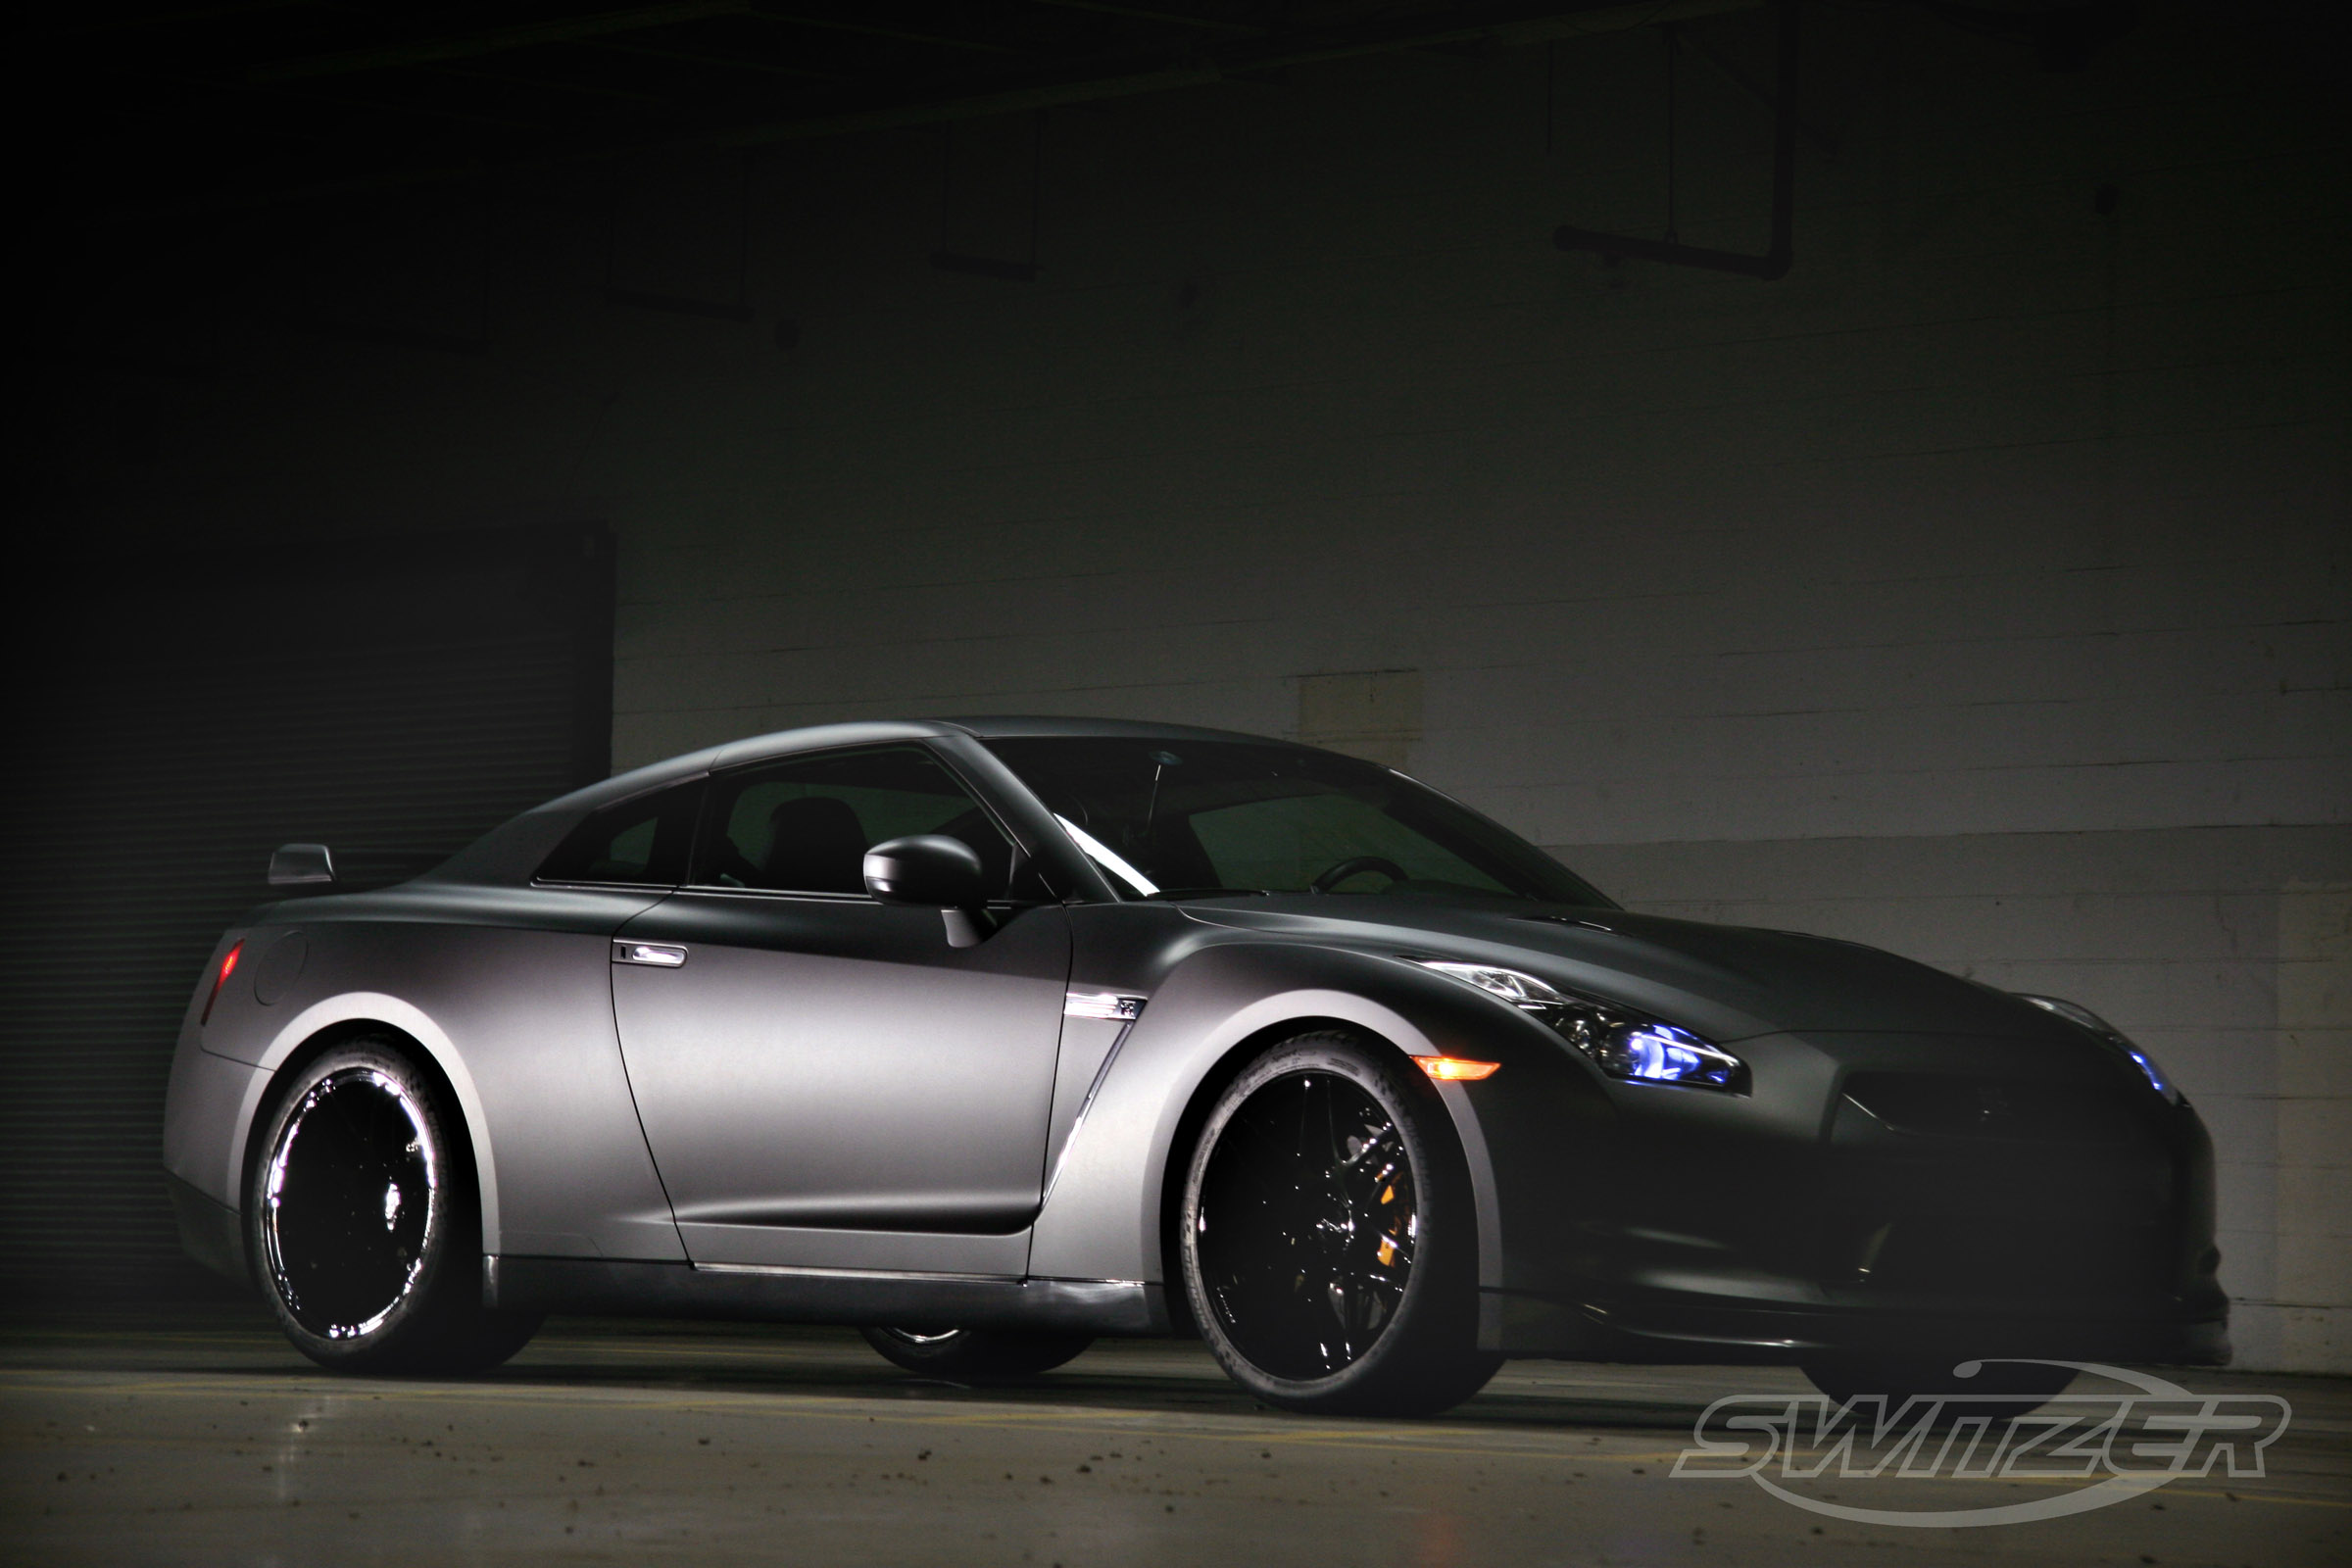 2012 switzer nissan gtr gt r tuning wallpaper 2400x1600 83578 wallpaperup. Black Bedroom Furniture Sets. Home Design Ideas